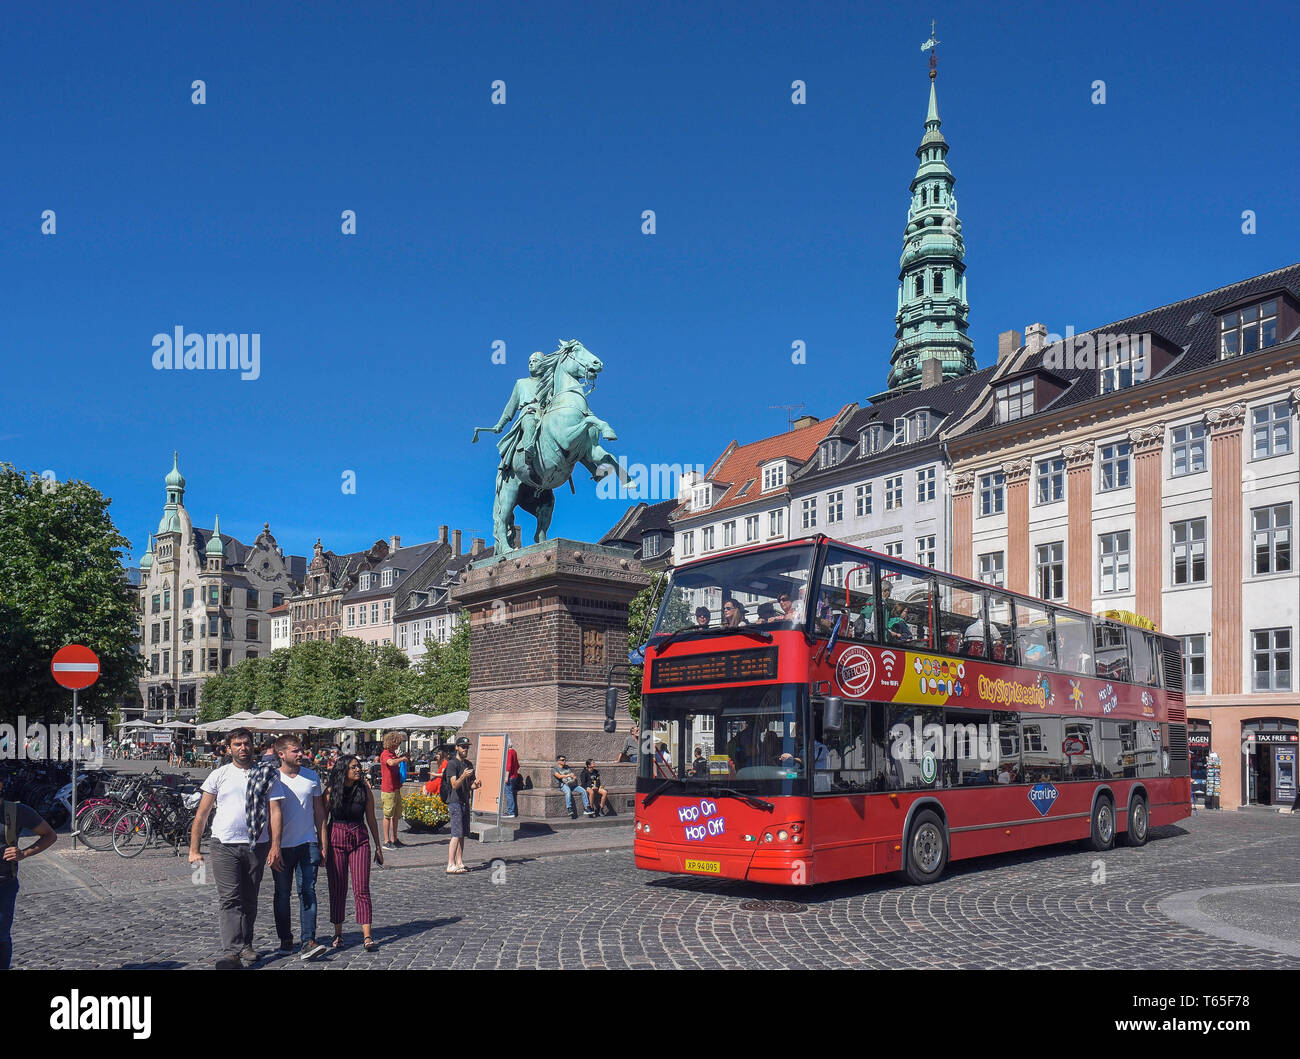 The equestrian statue of Absalon on Hojbro Plads in Copenhagen commemorates the city founder Bishop Absalom, Copenhagen, Zealand, Denmark 07/06/2018   - Stock Image